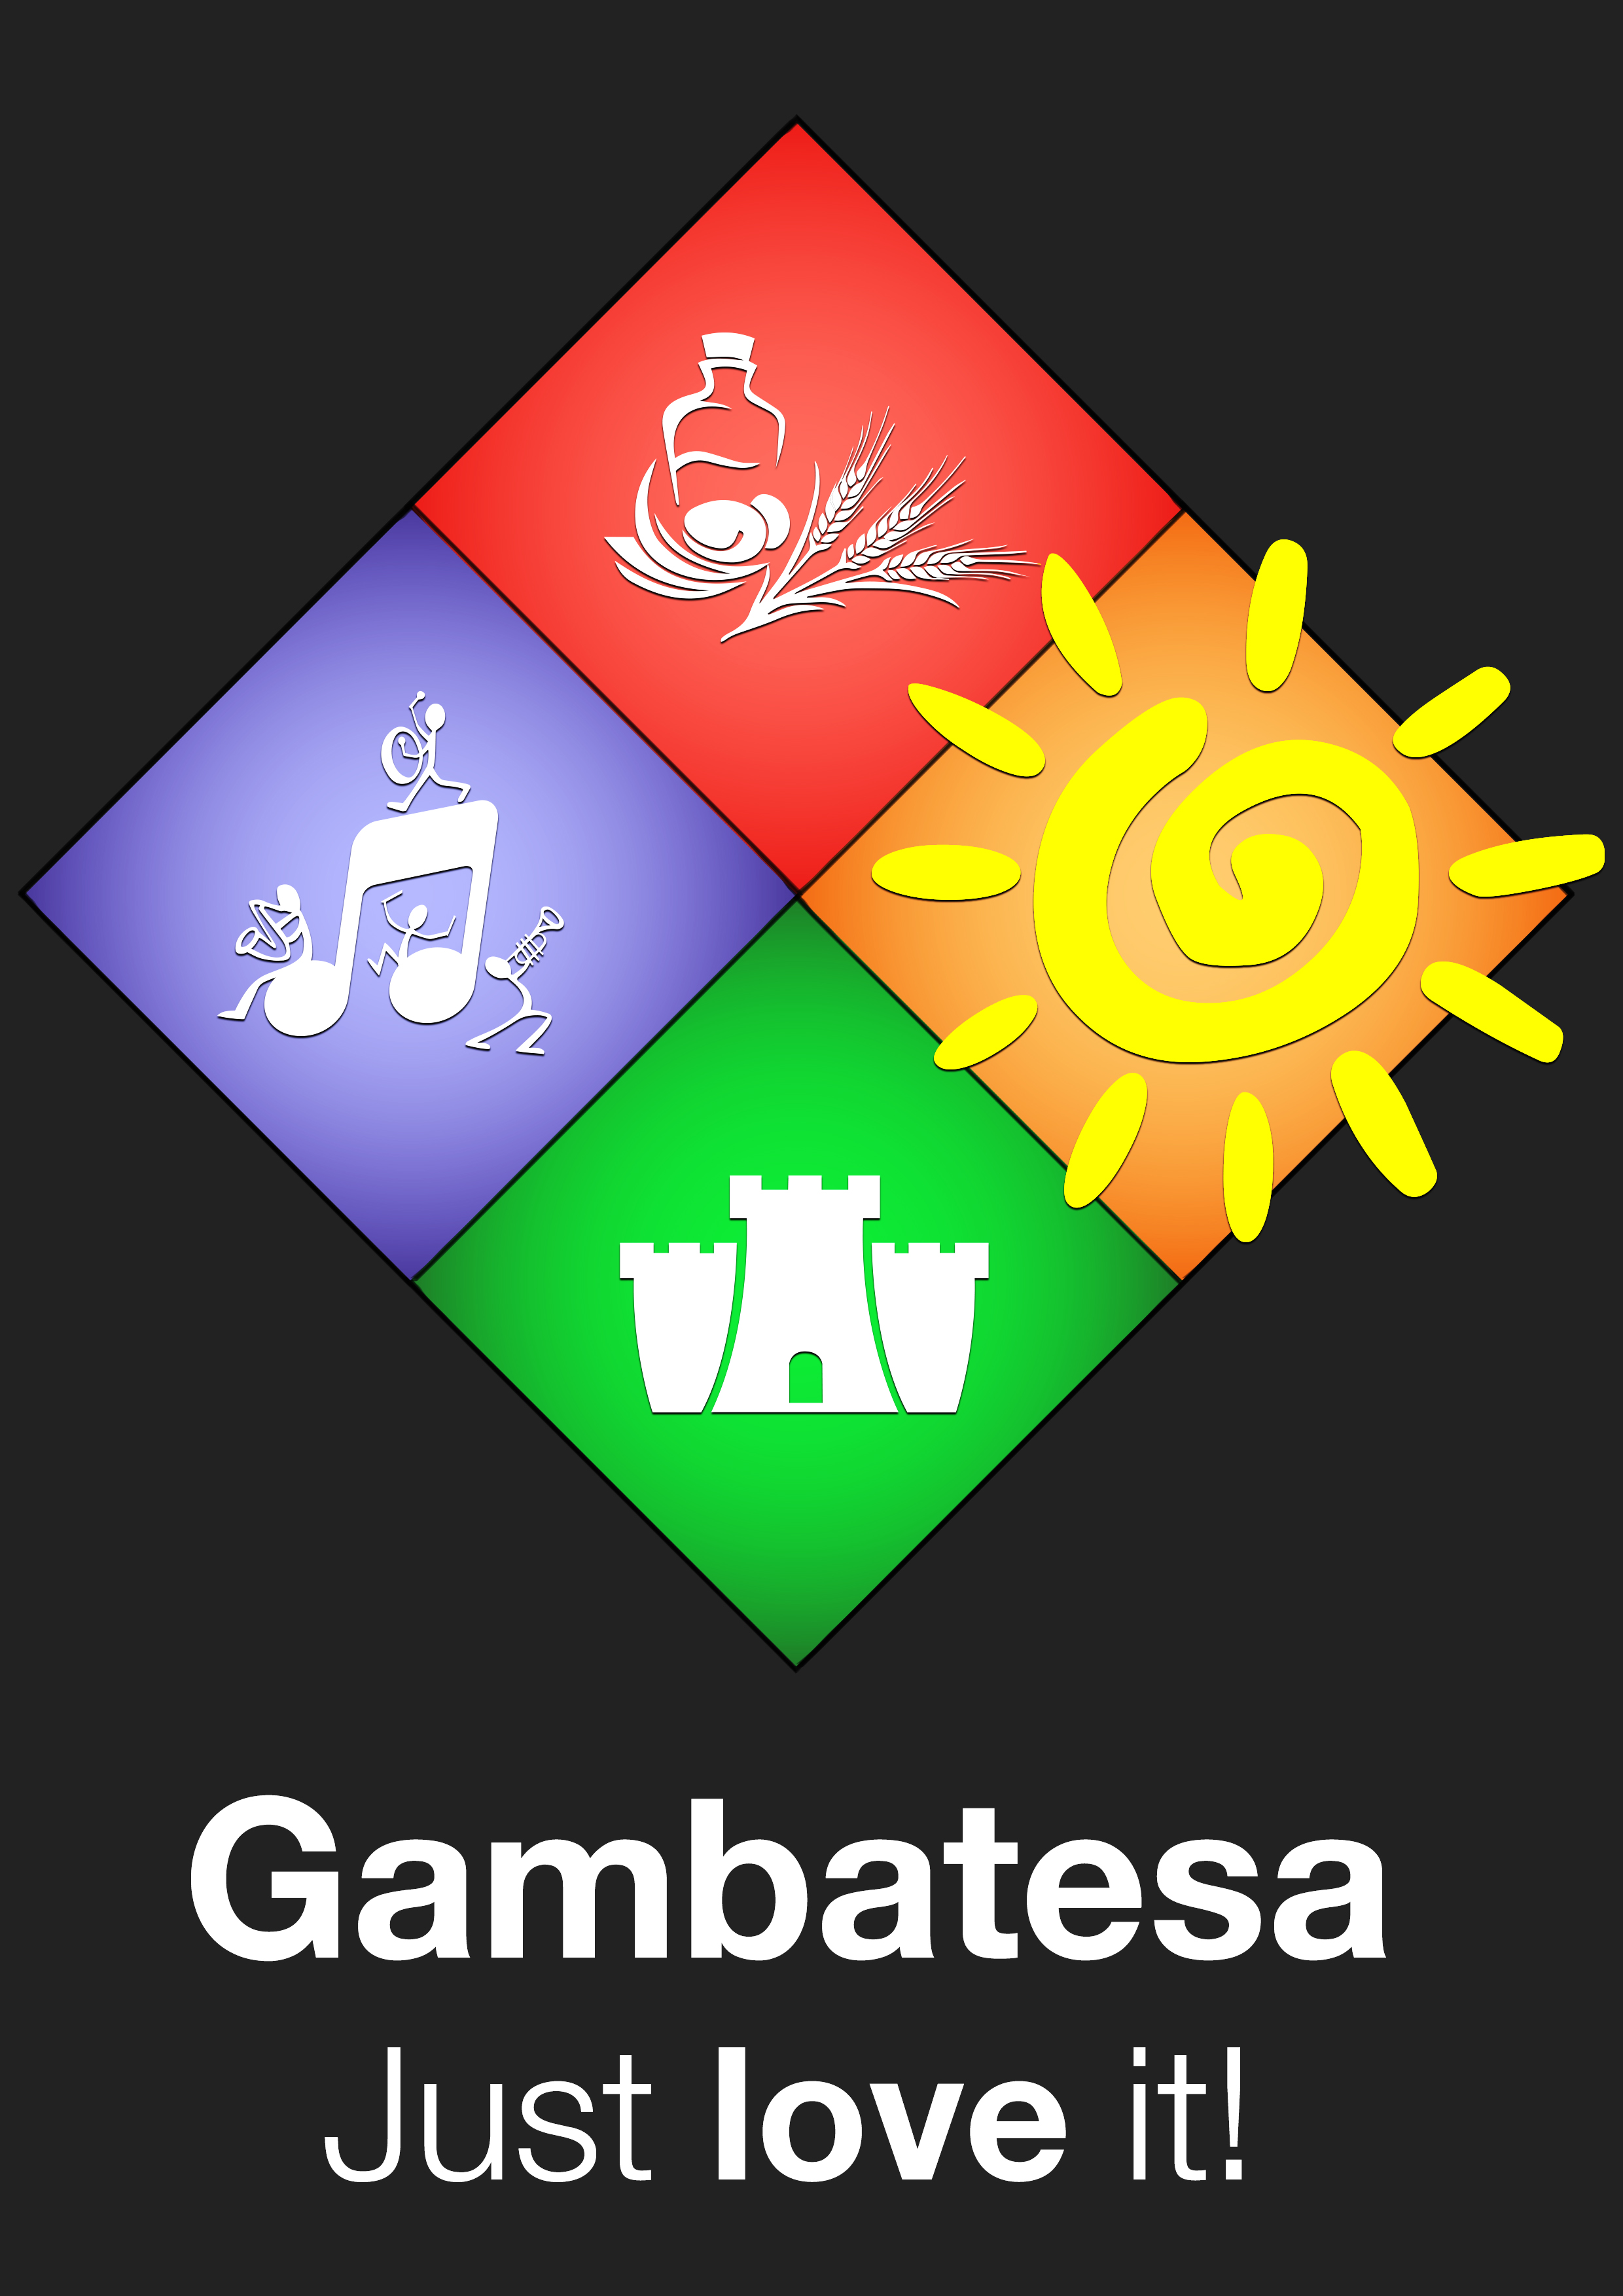 logo Gambatesa Just love it